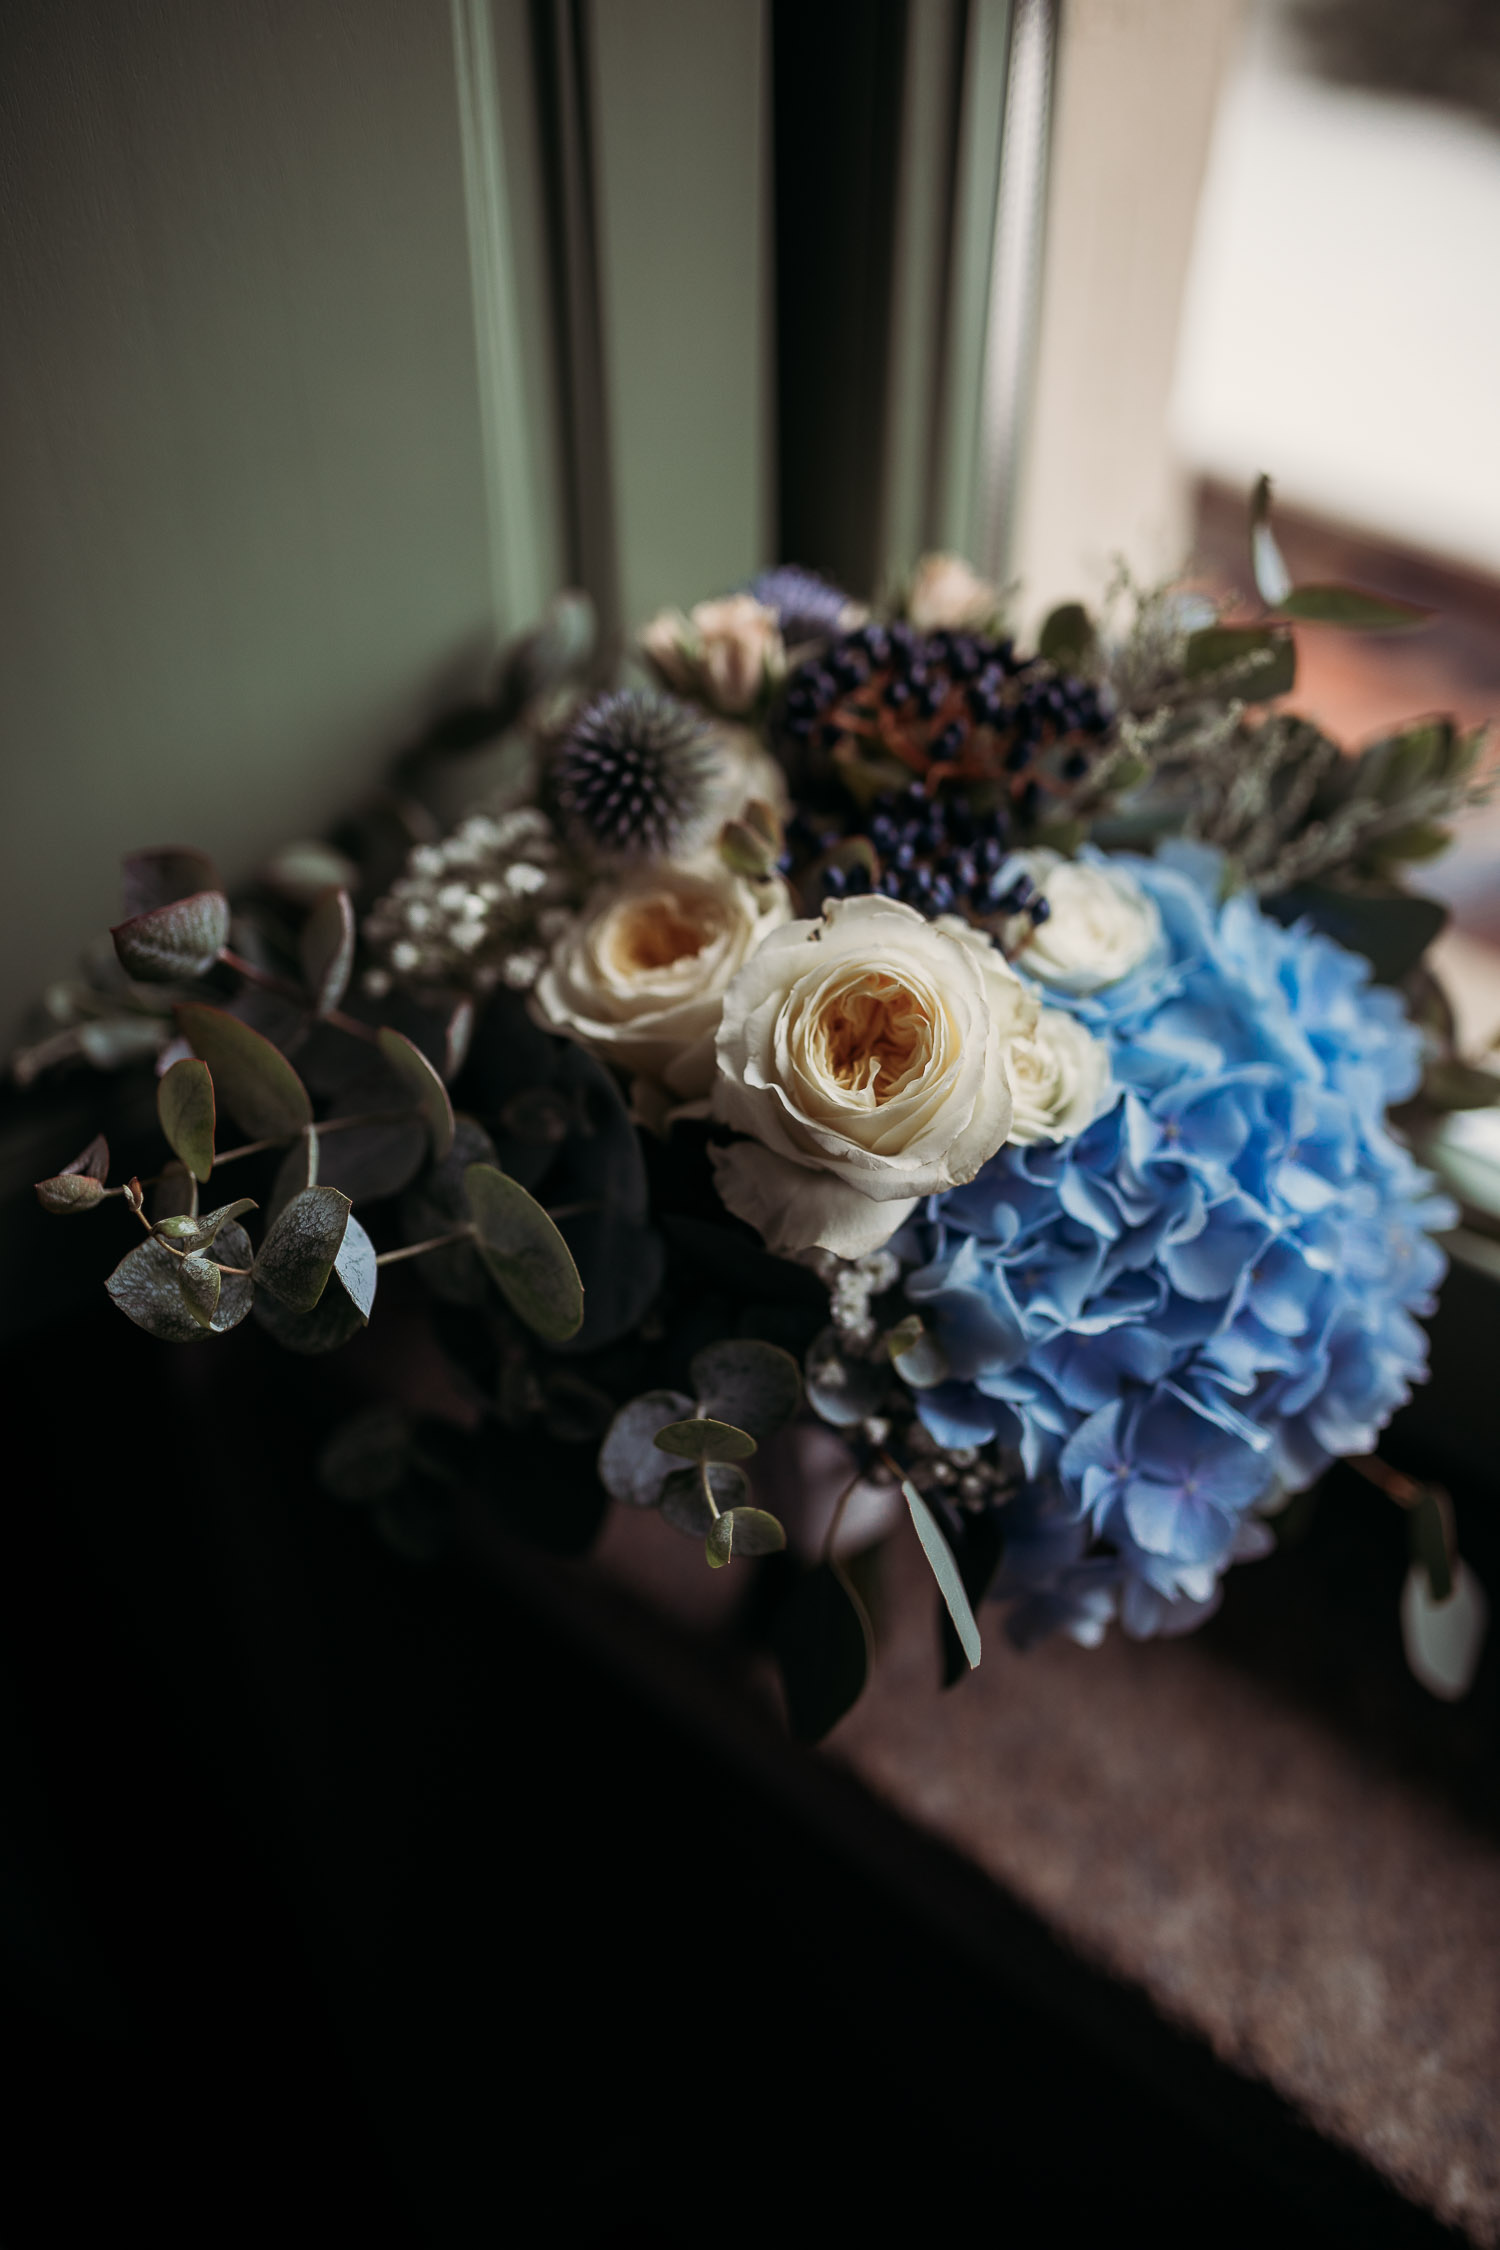 Bridal bouquet with blue hydrangea and light